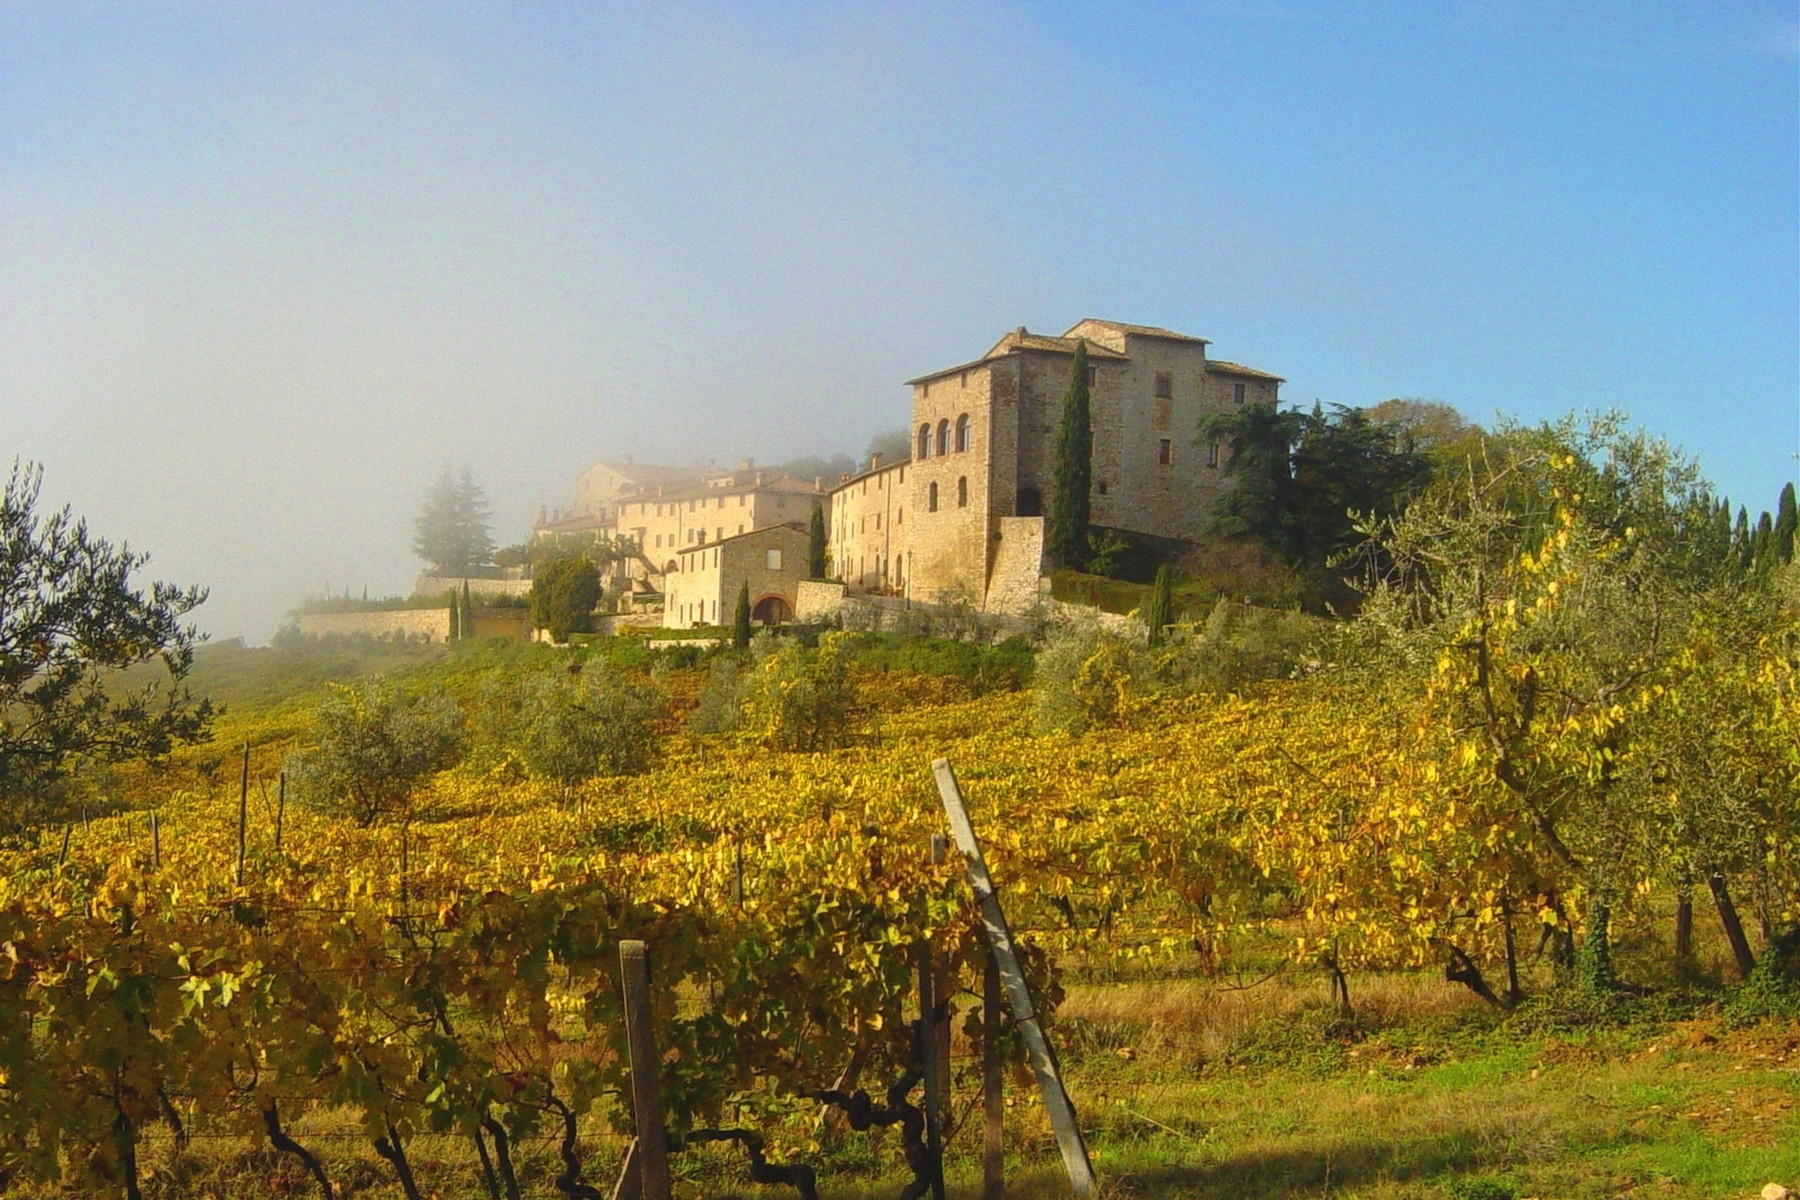 Casa Unifamiliar por un Venta en Historic castle in Chianti with vineyard Gaiole In Chianti, Siena, 53013 Toscana, Italia